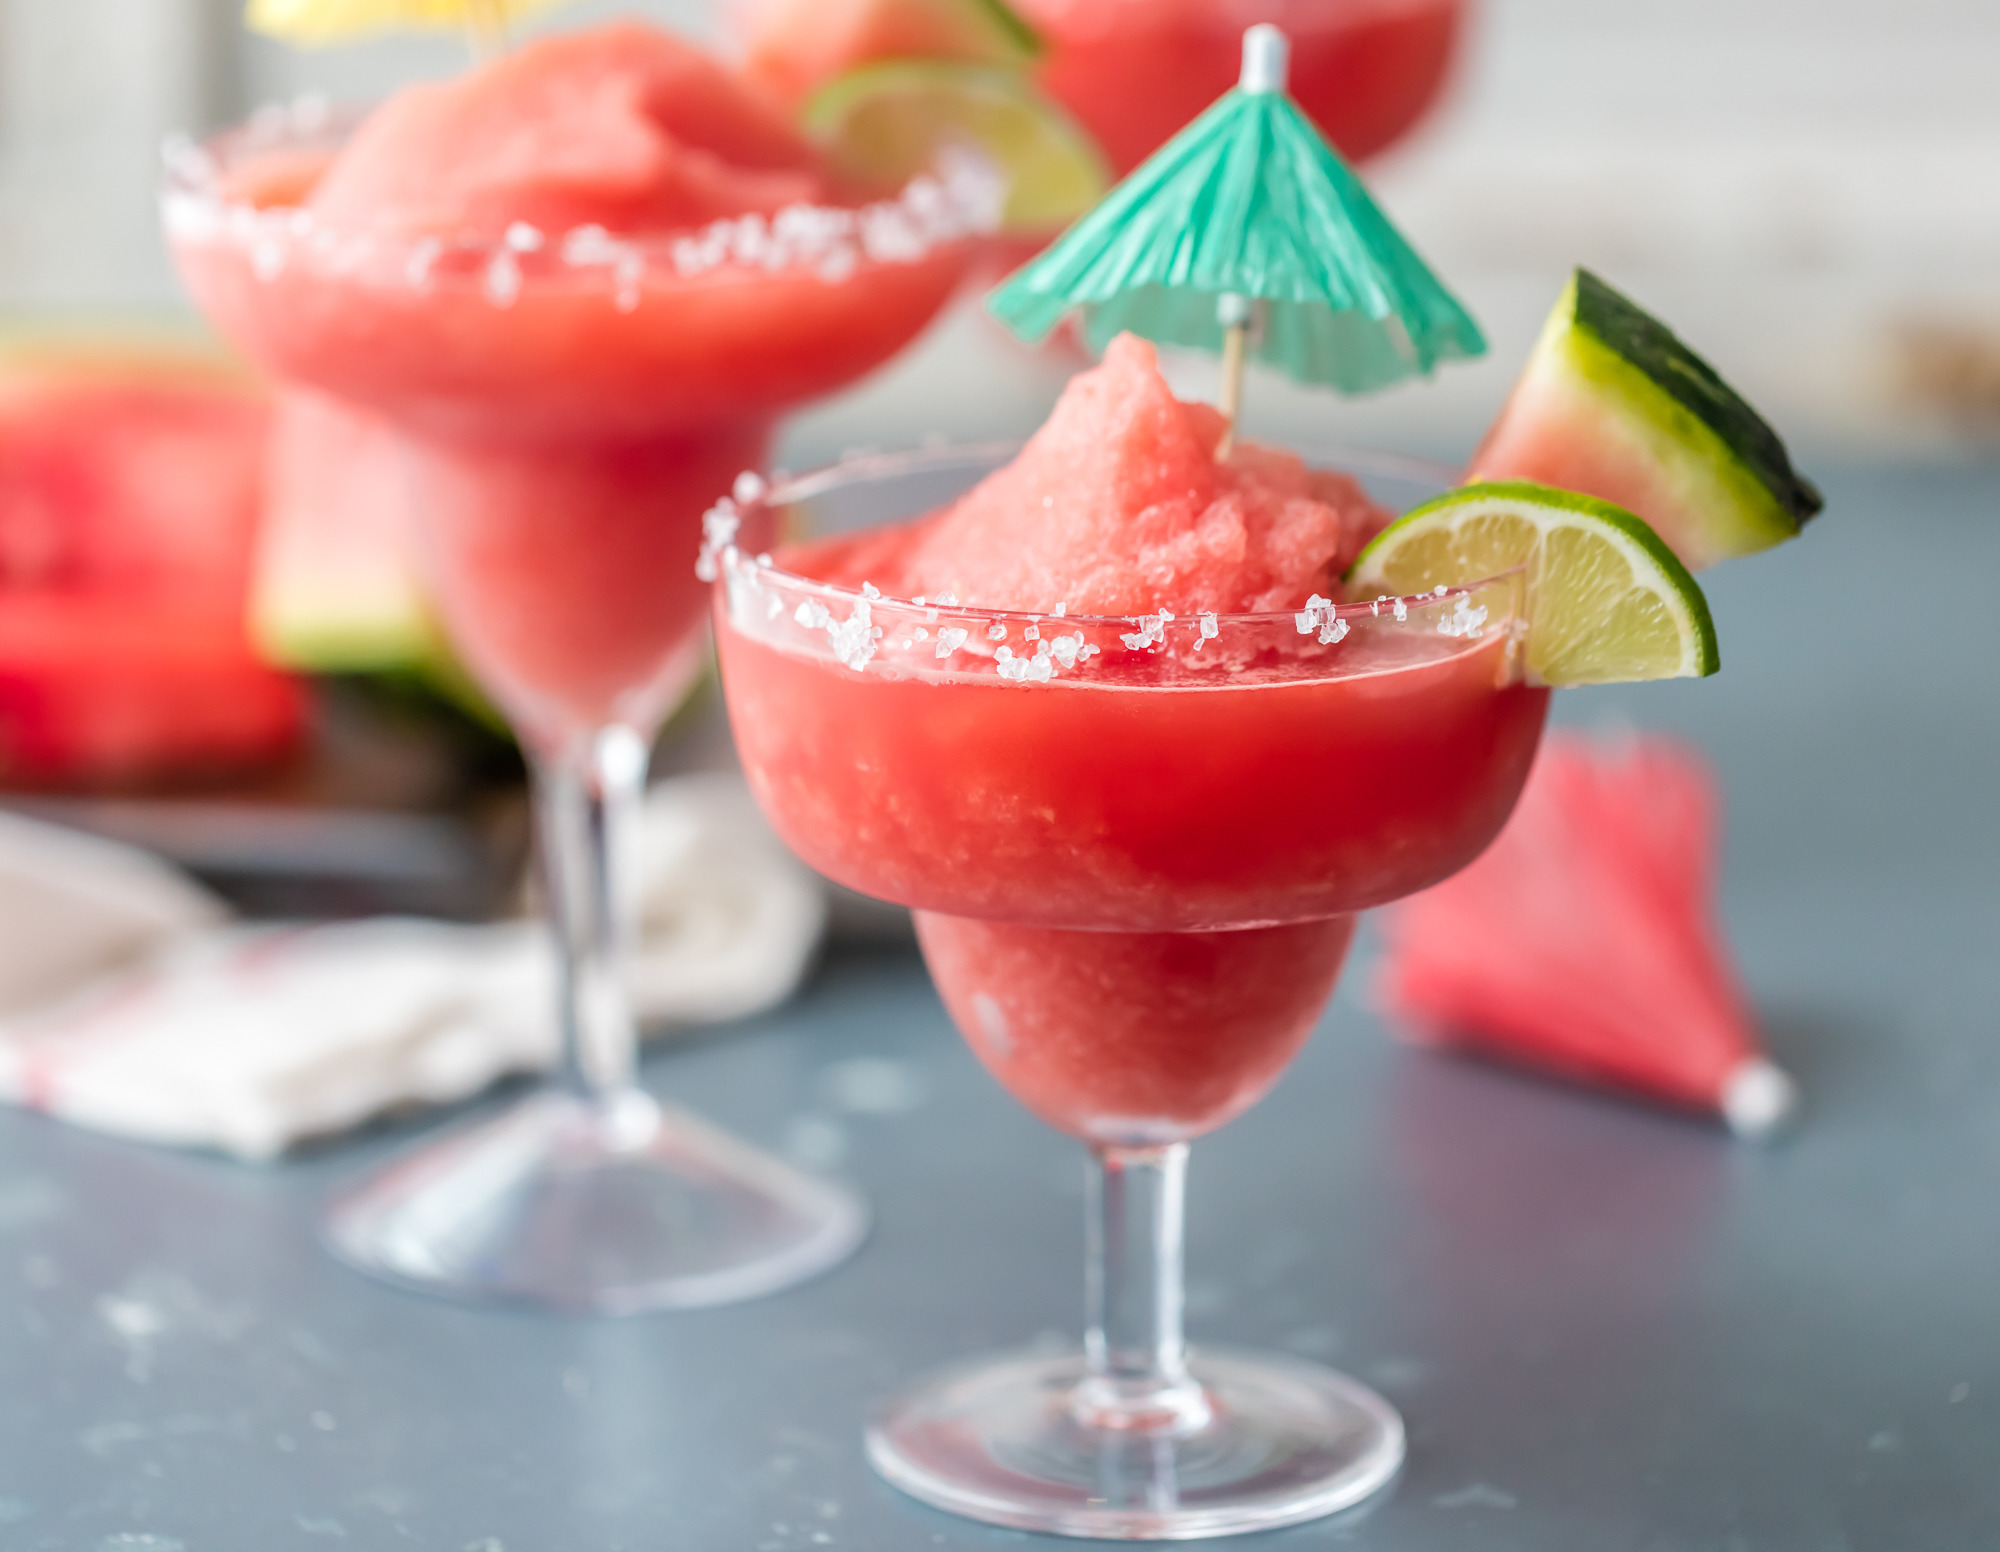 20 Tequila Drinks for Cinco de Mayo